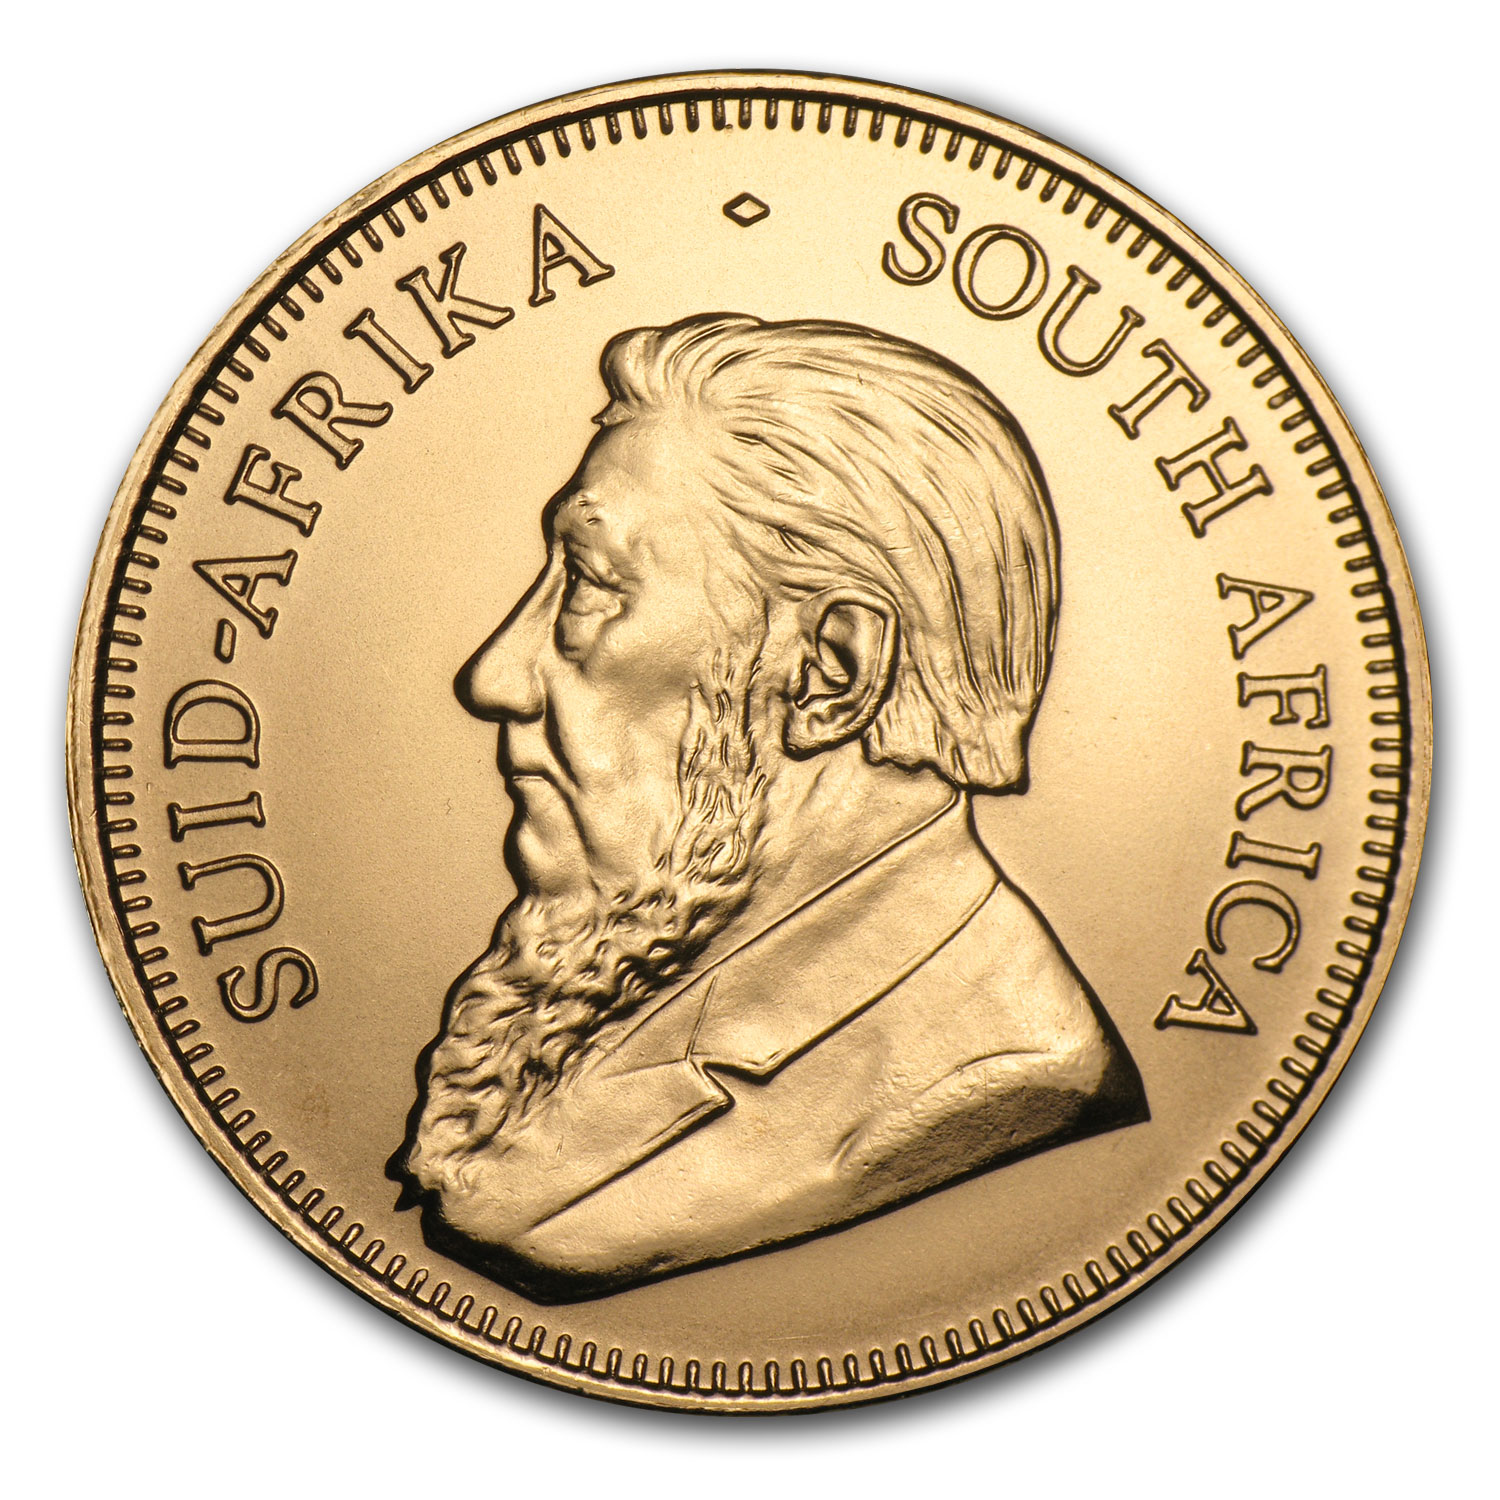 2014 1/2 oz Gold South African Krugerrand